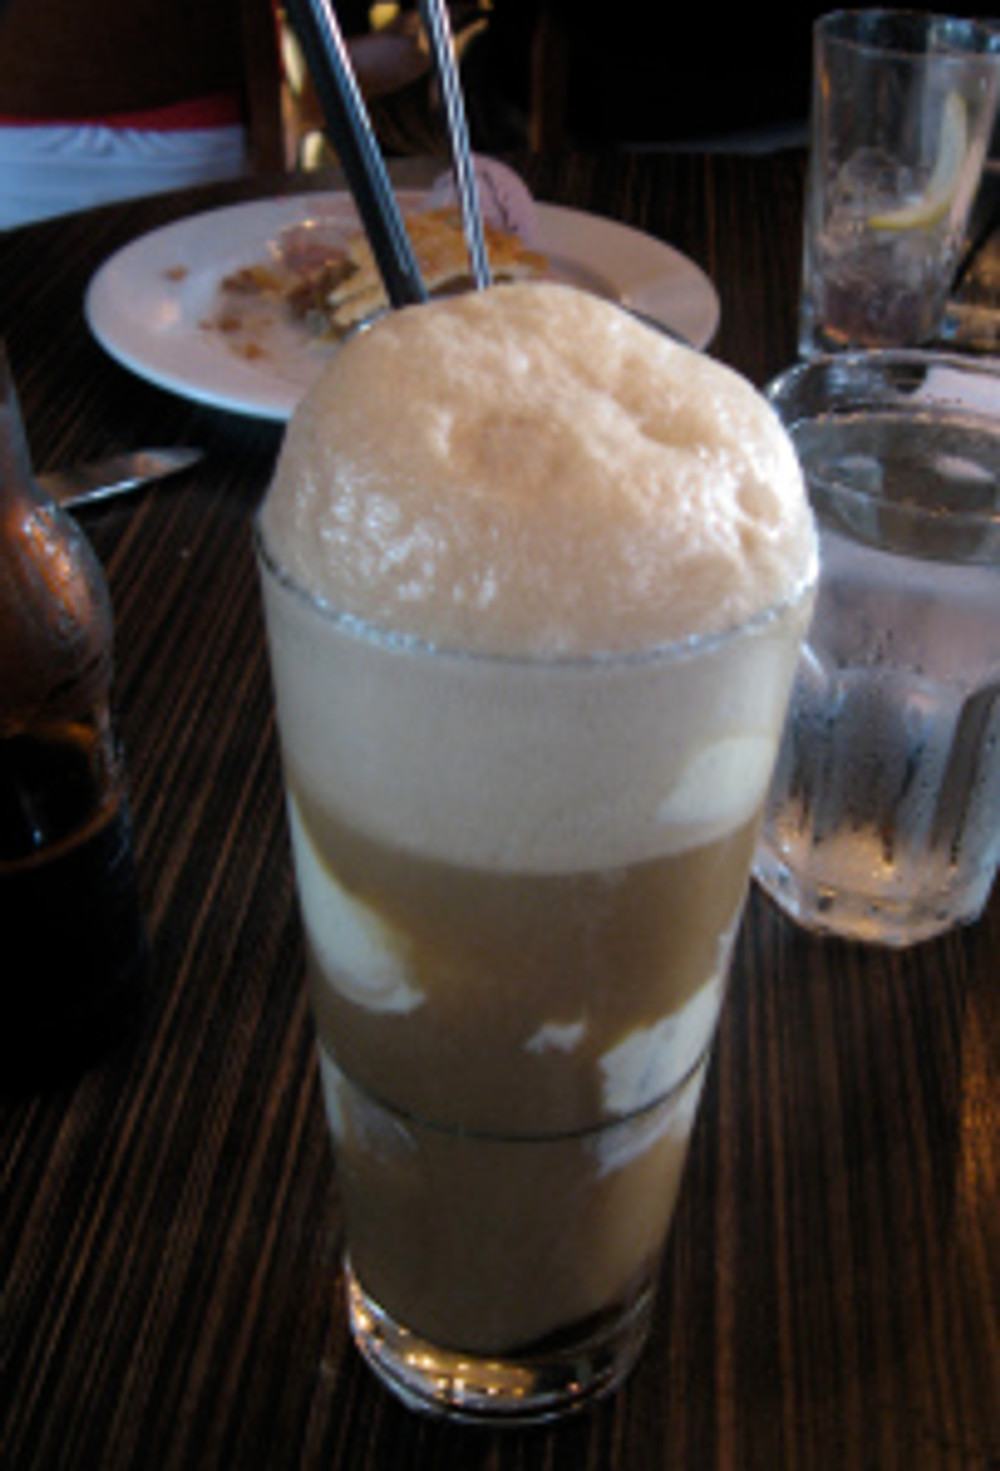 By Arnold Gatilao - originally posted to Flickr as Root Beer Float, CC BY 2.0, https://commons.wikimedia.org/w/index.php?curid=5644549